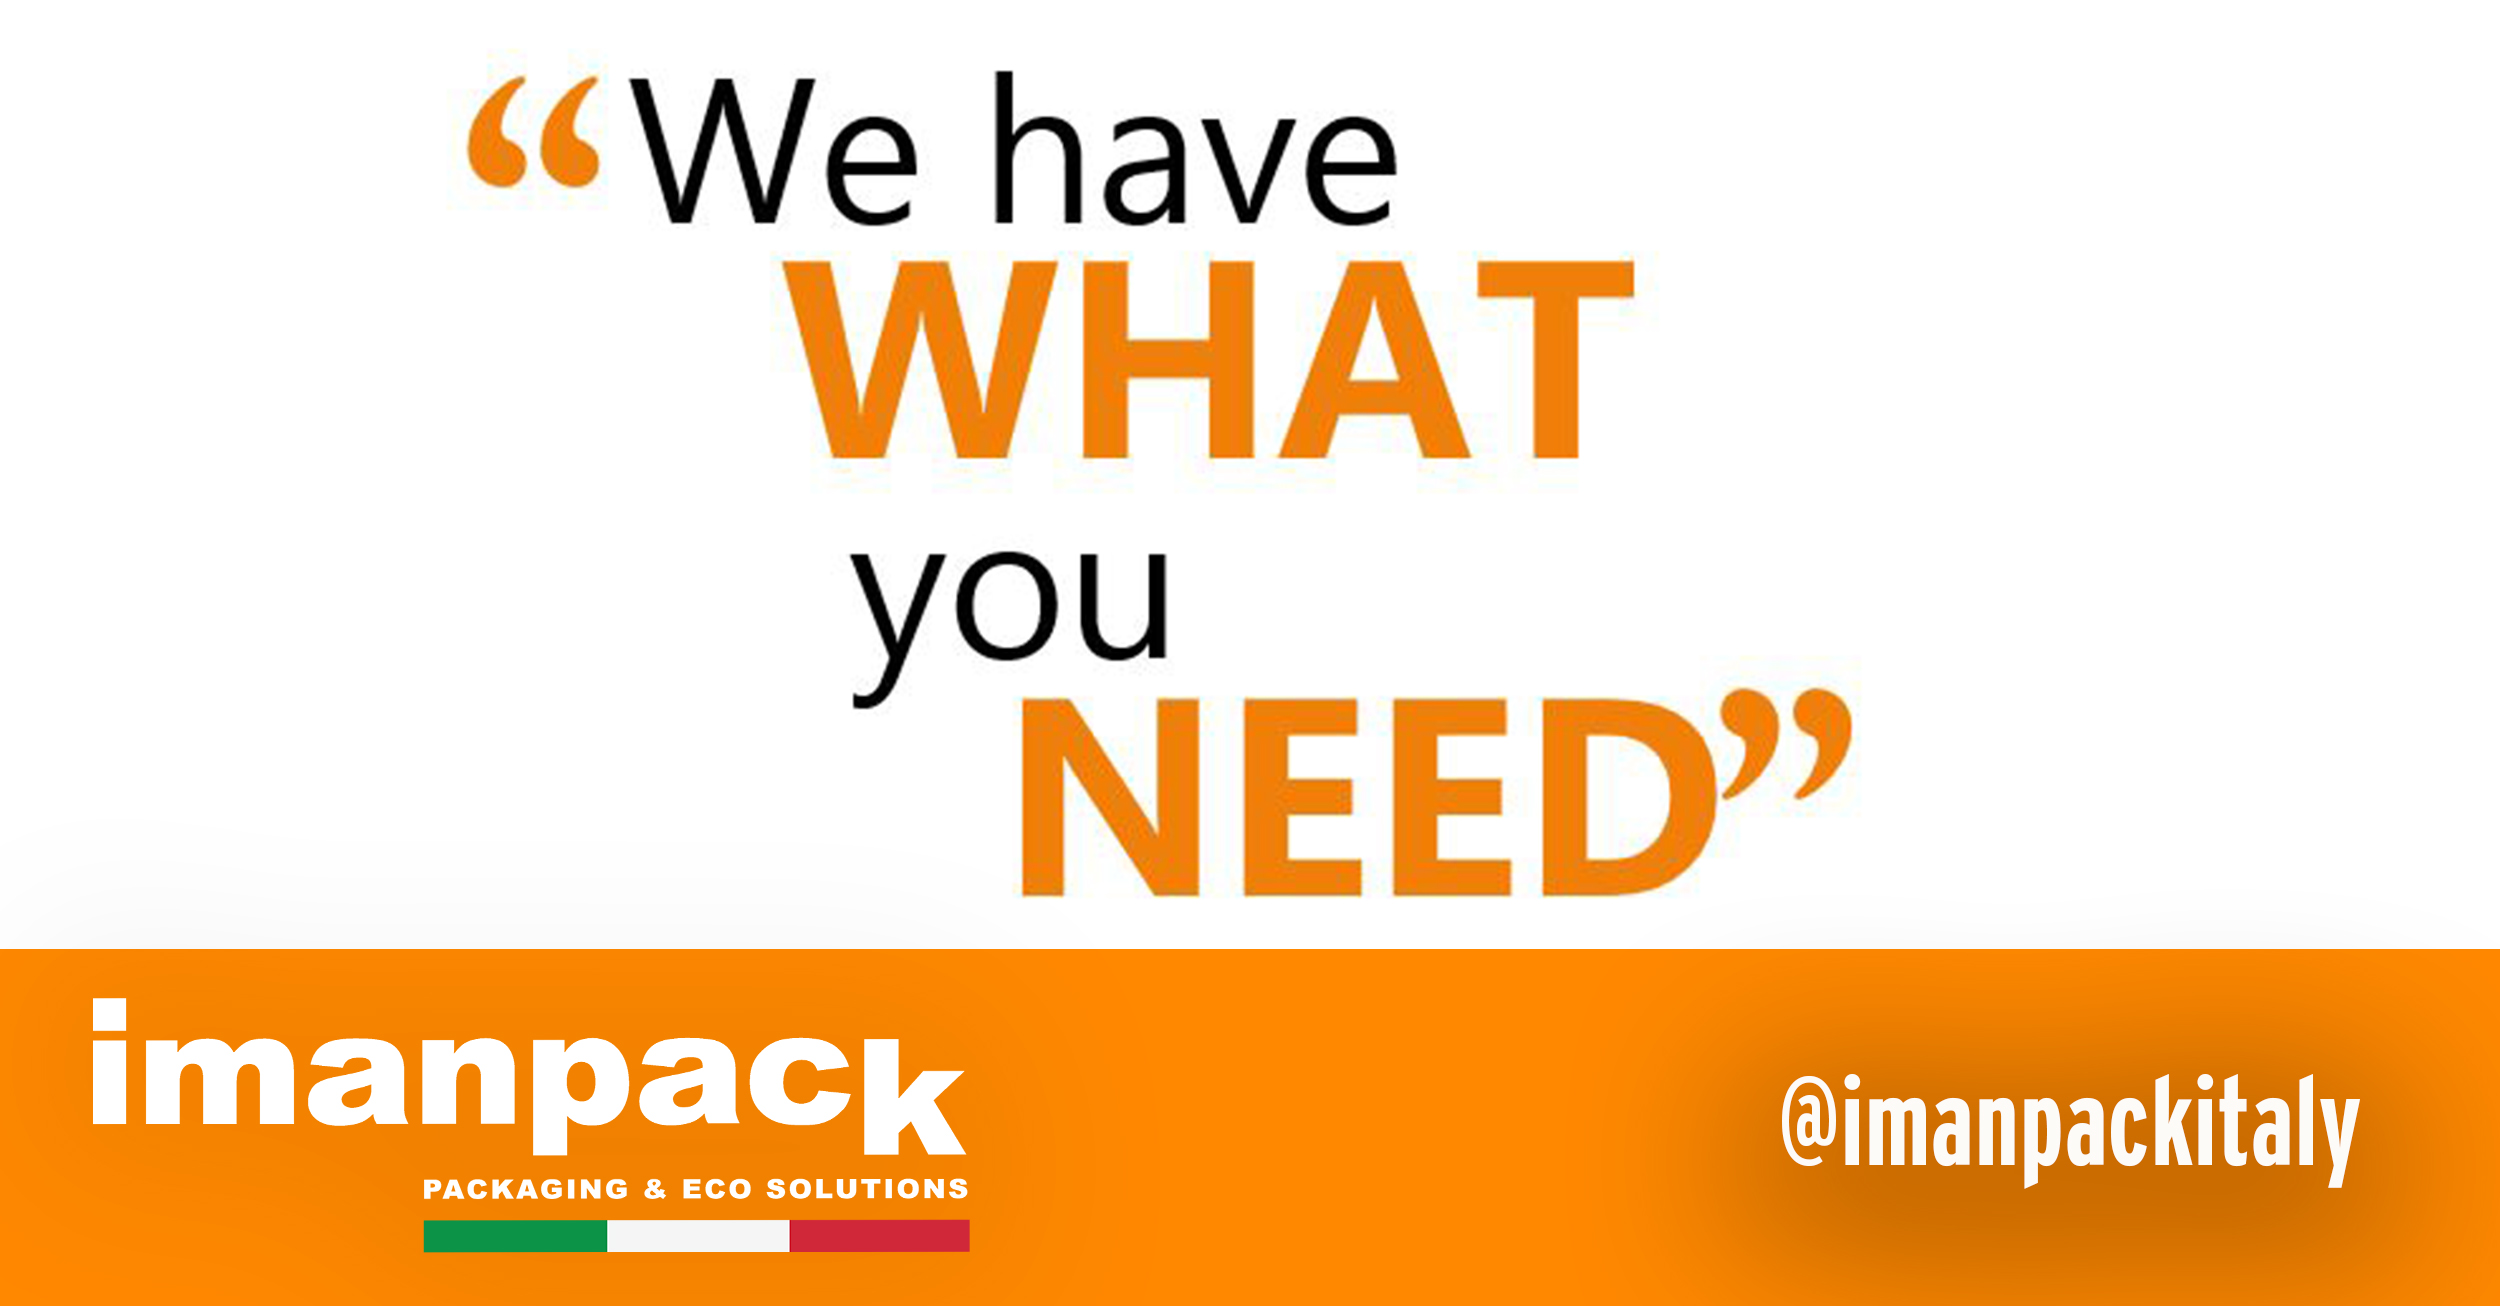 Imanpack Packaging provides tailor-made solutions for your needs